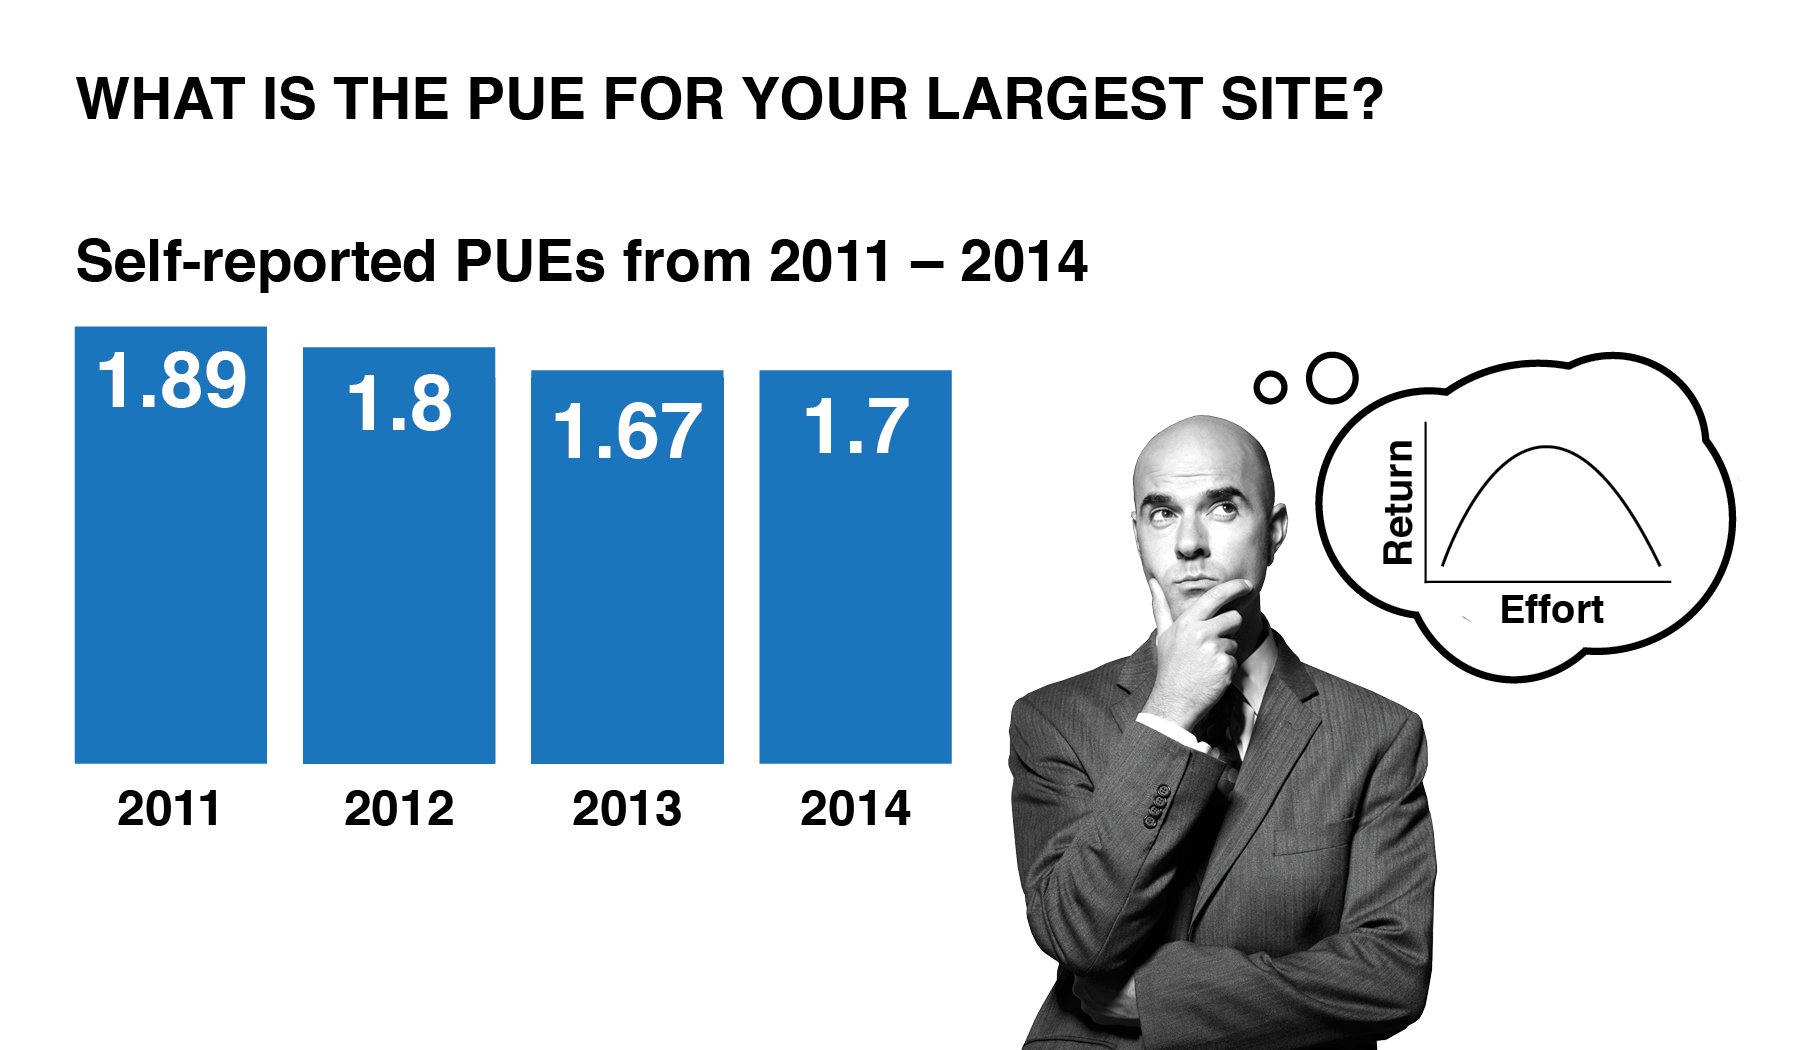 See largest PUE site graphic